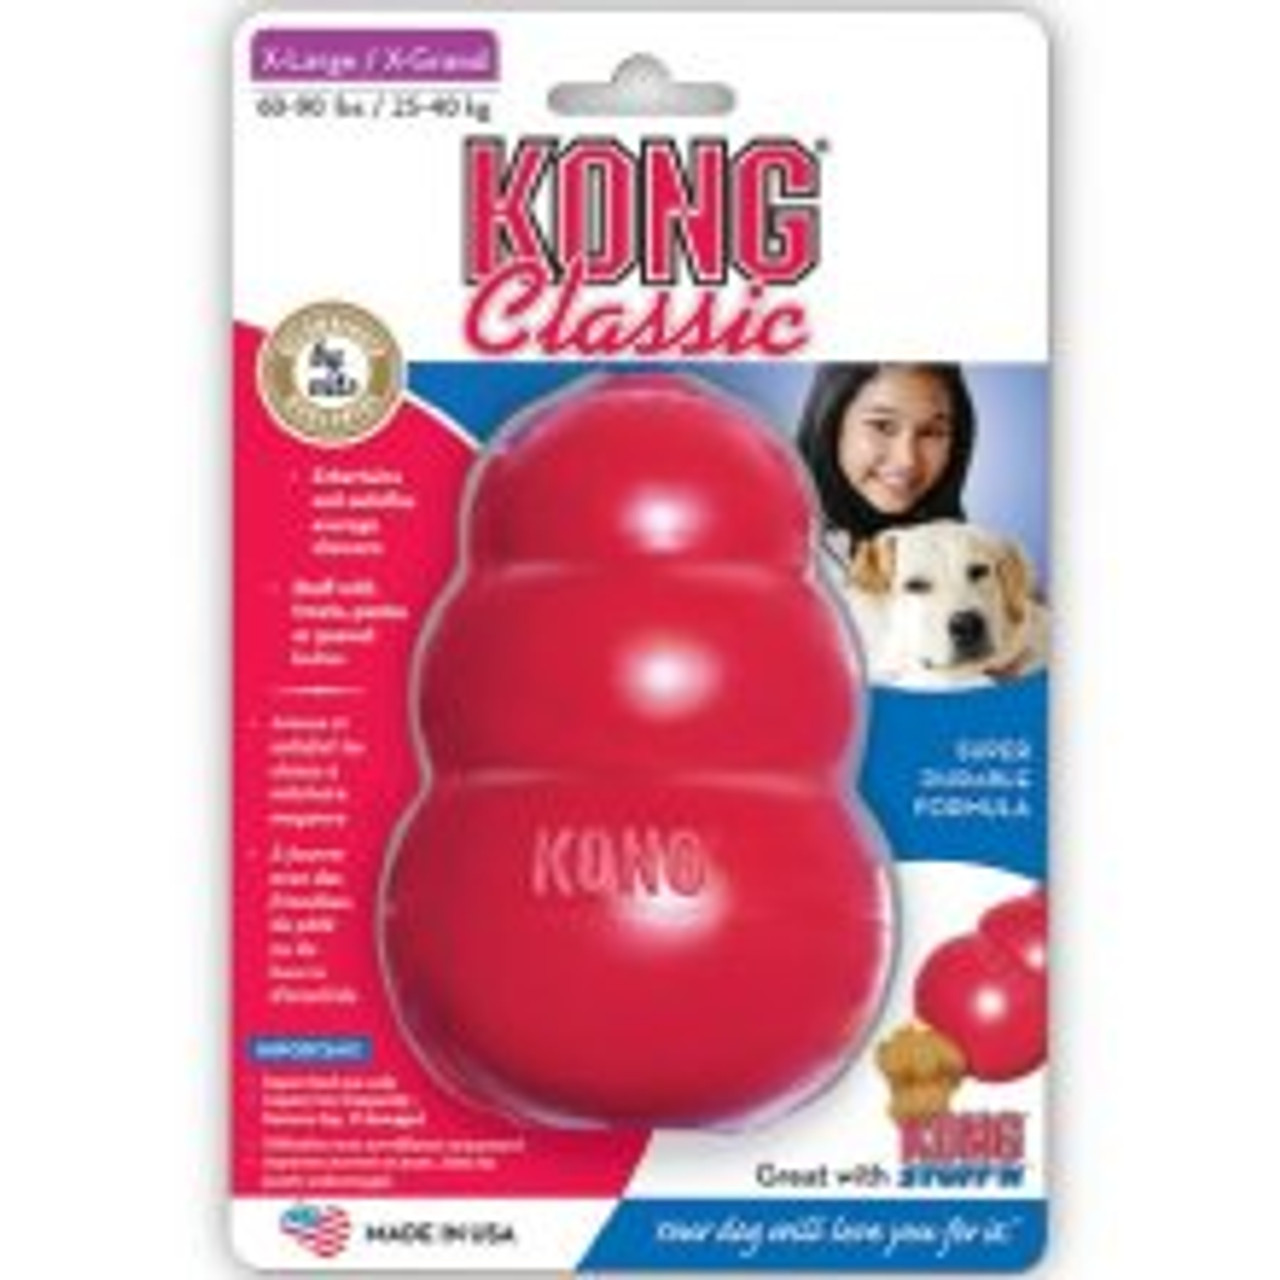 Kong Classic (Red)